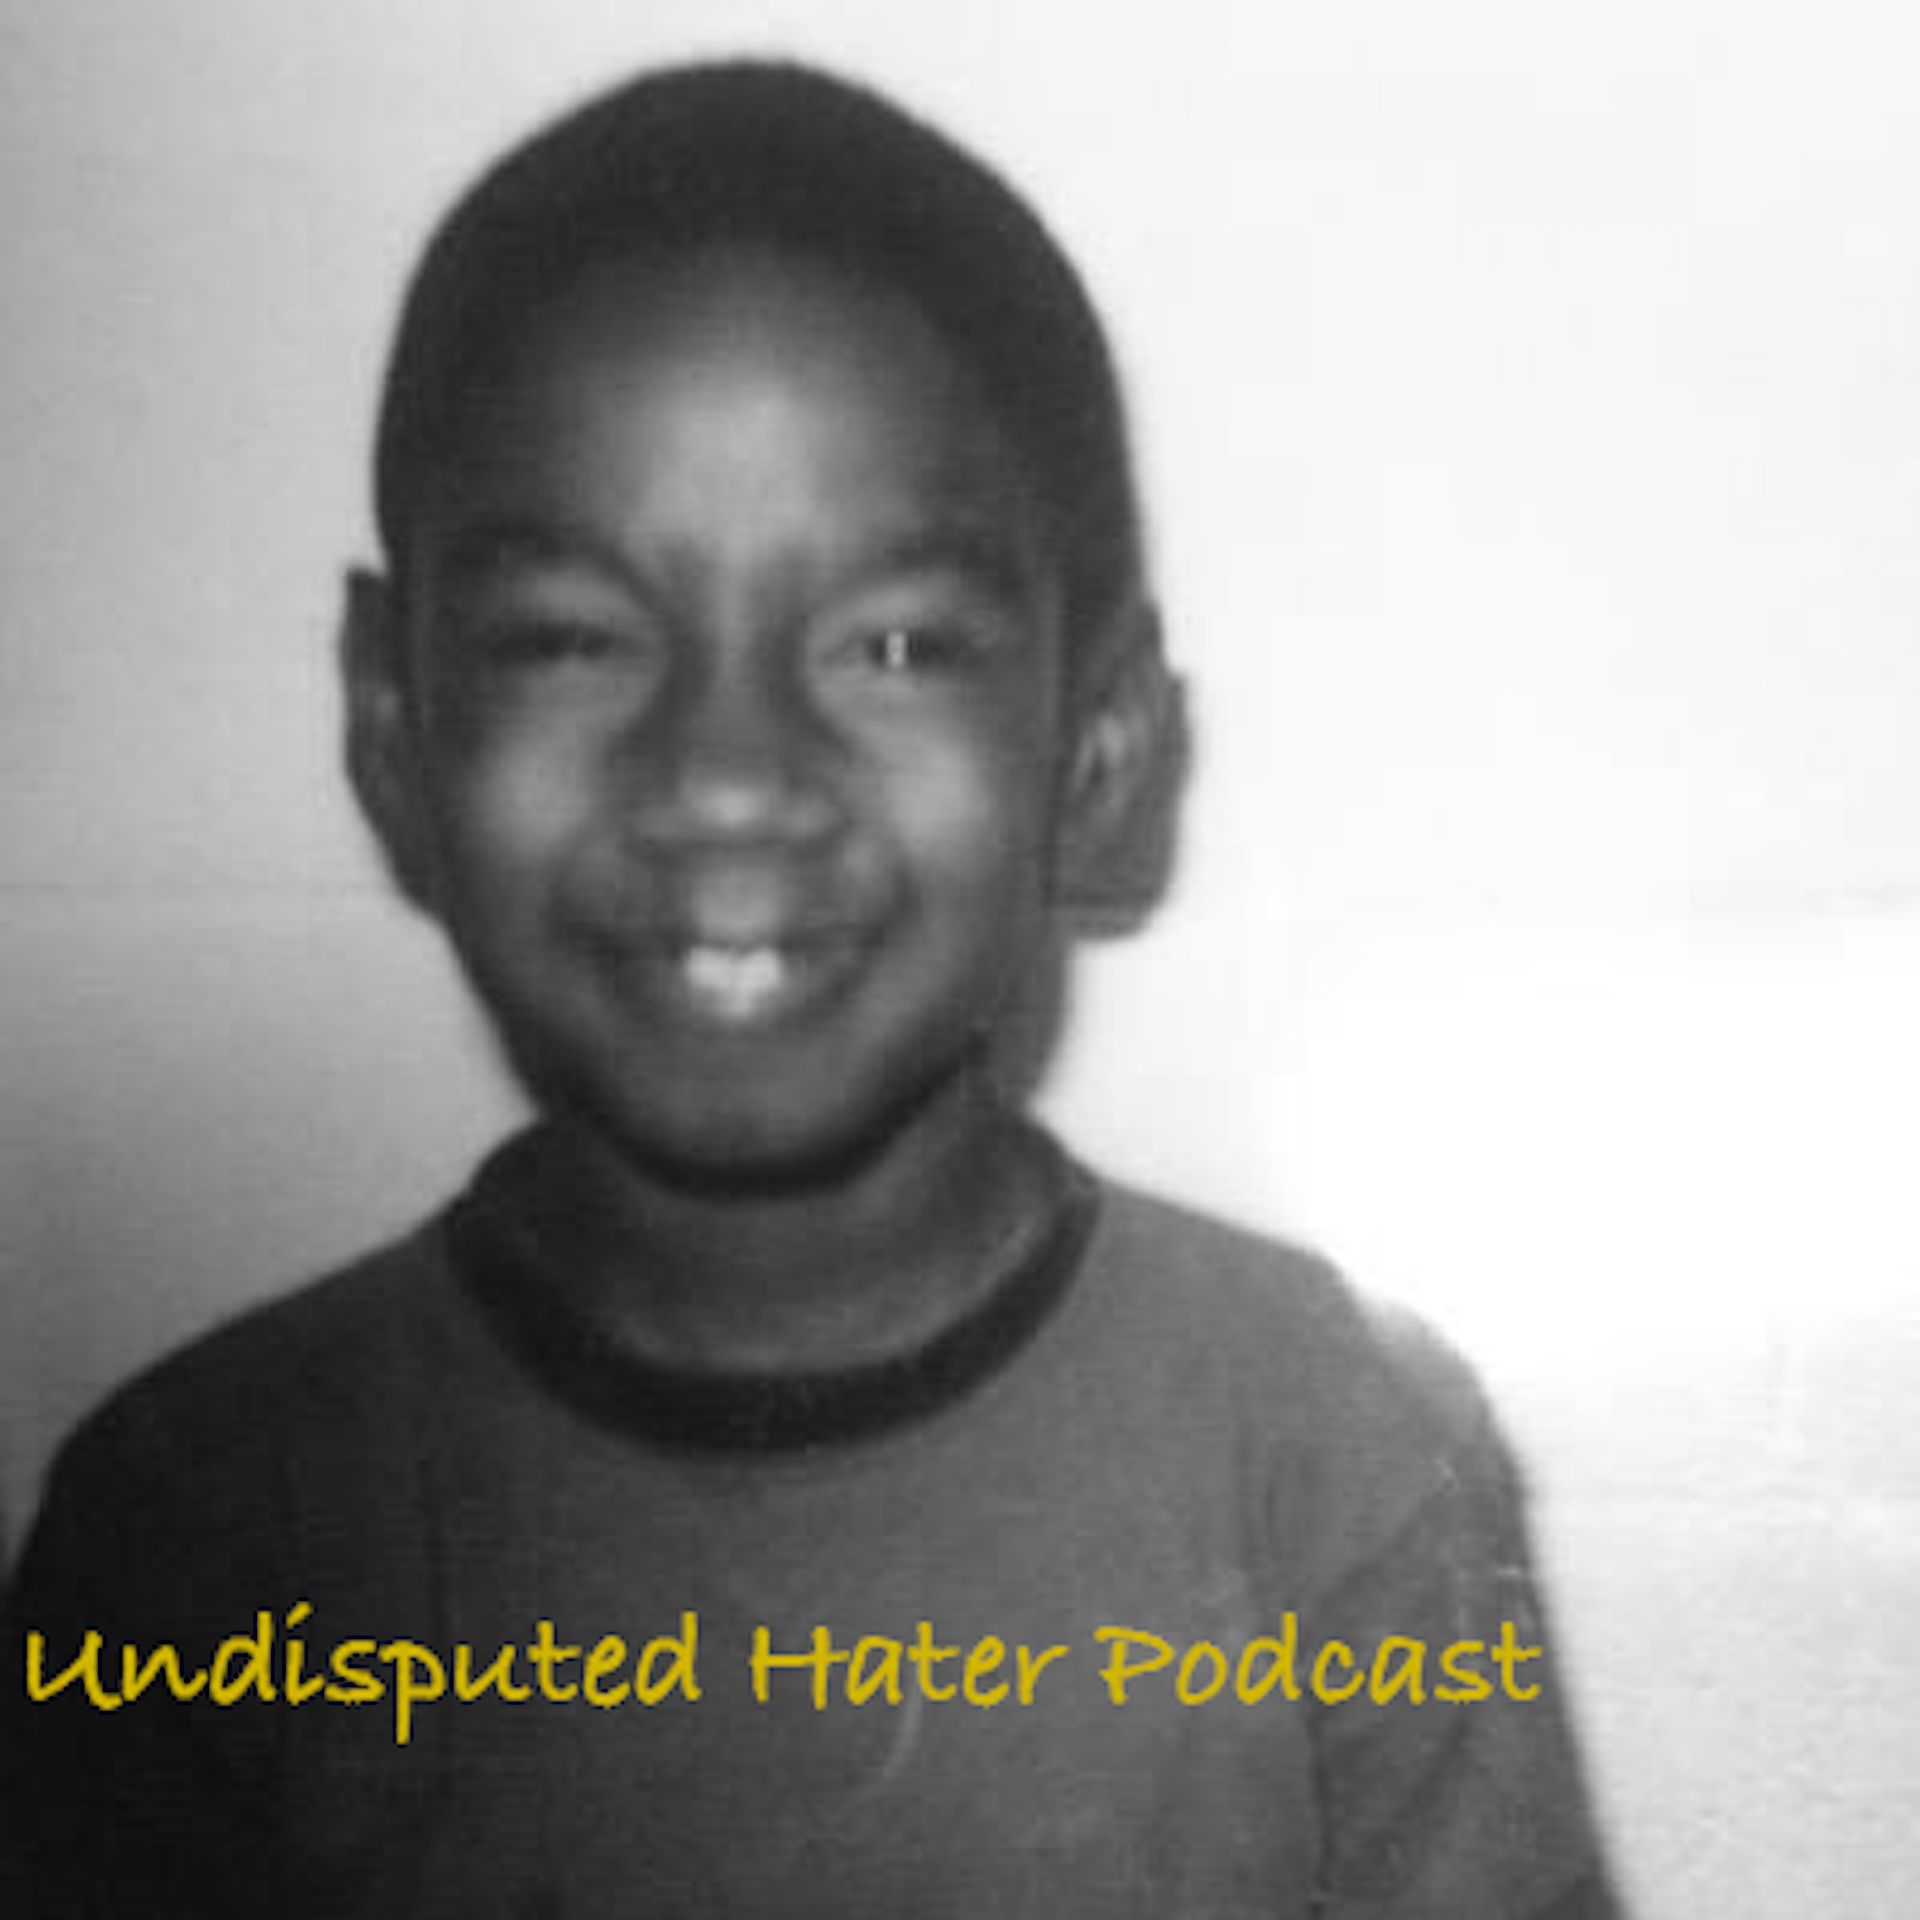 Undisputed Hater Podcast - Episode 005